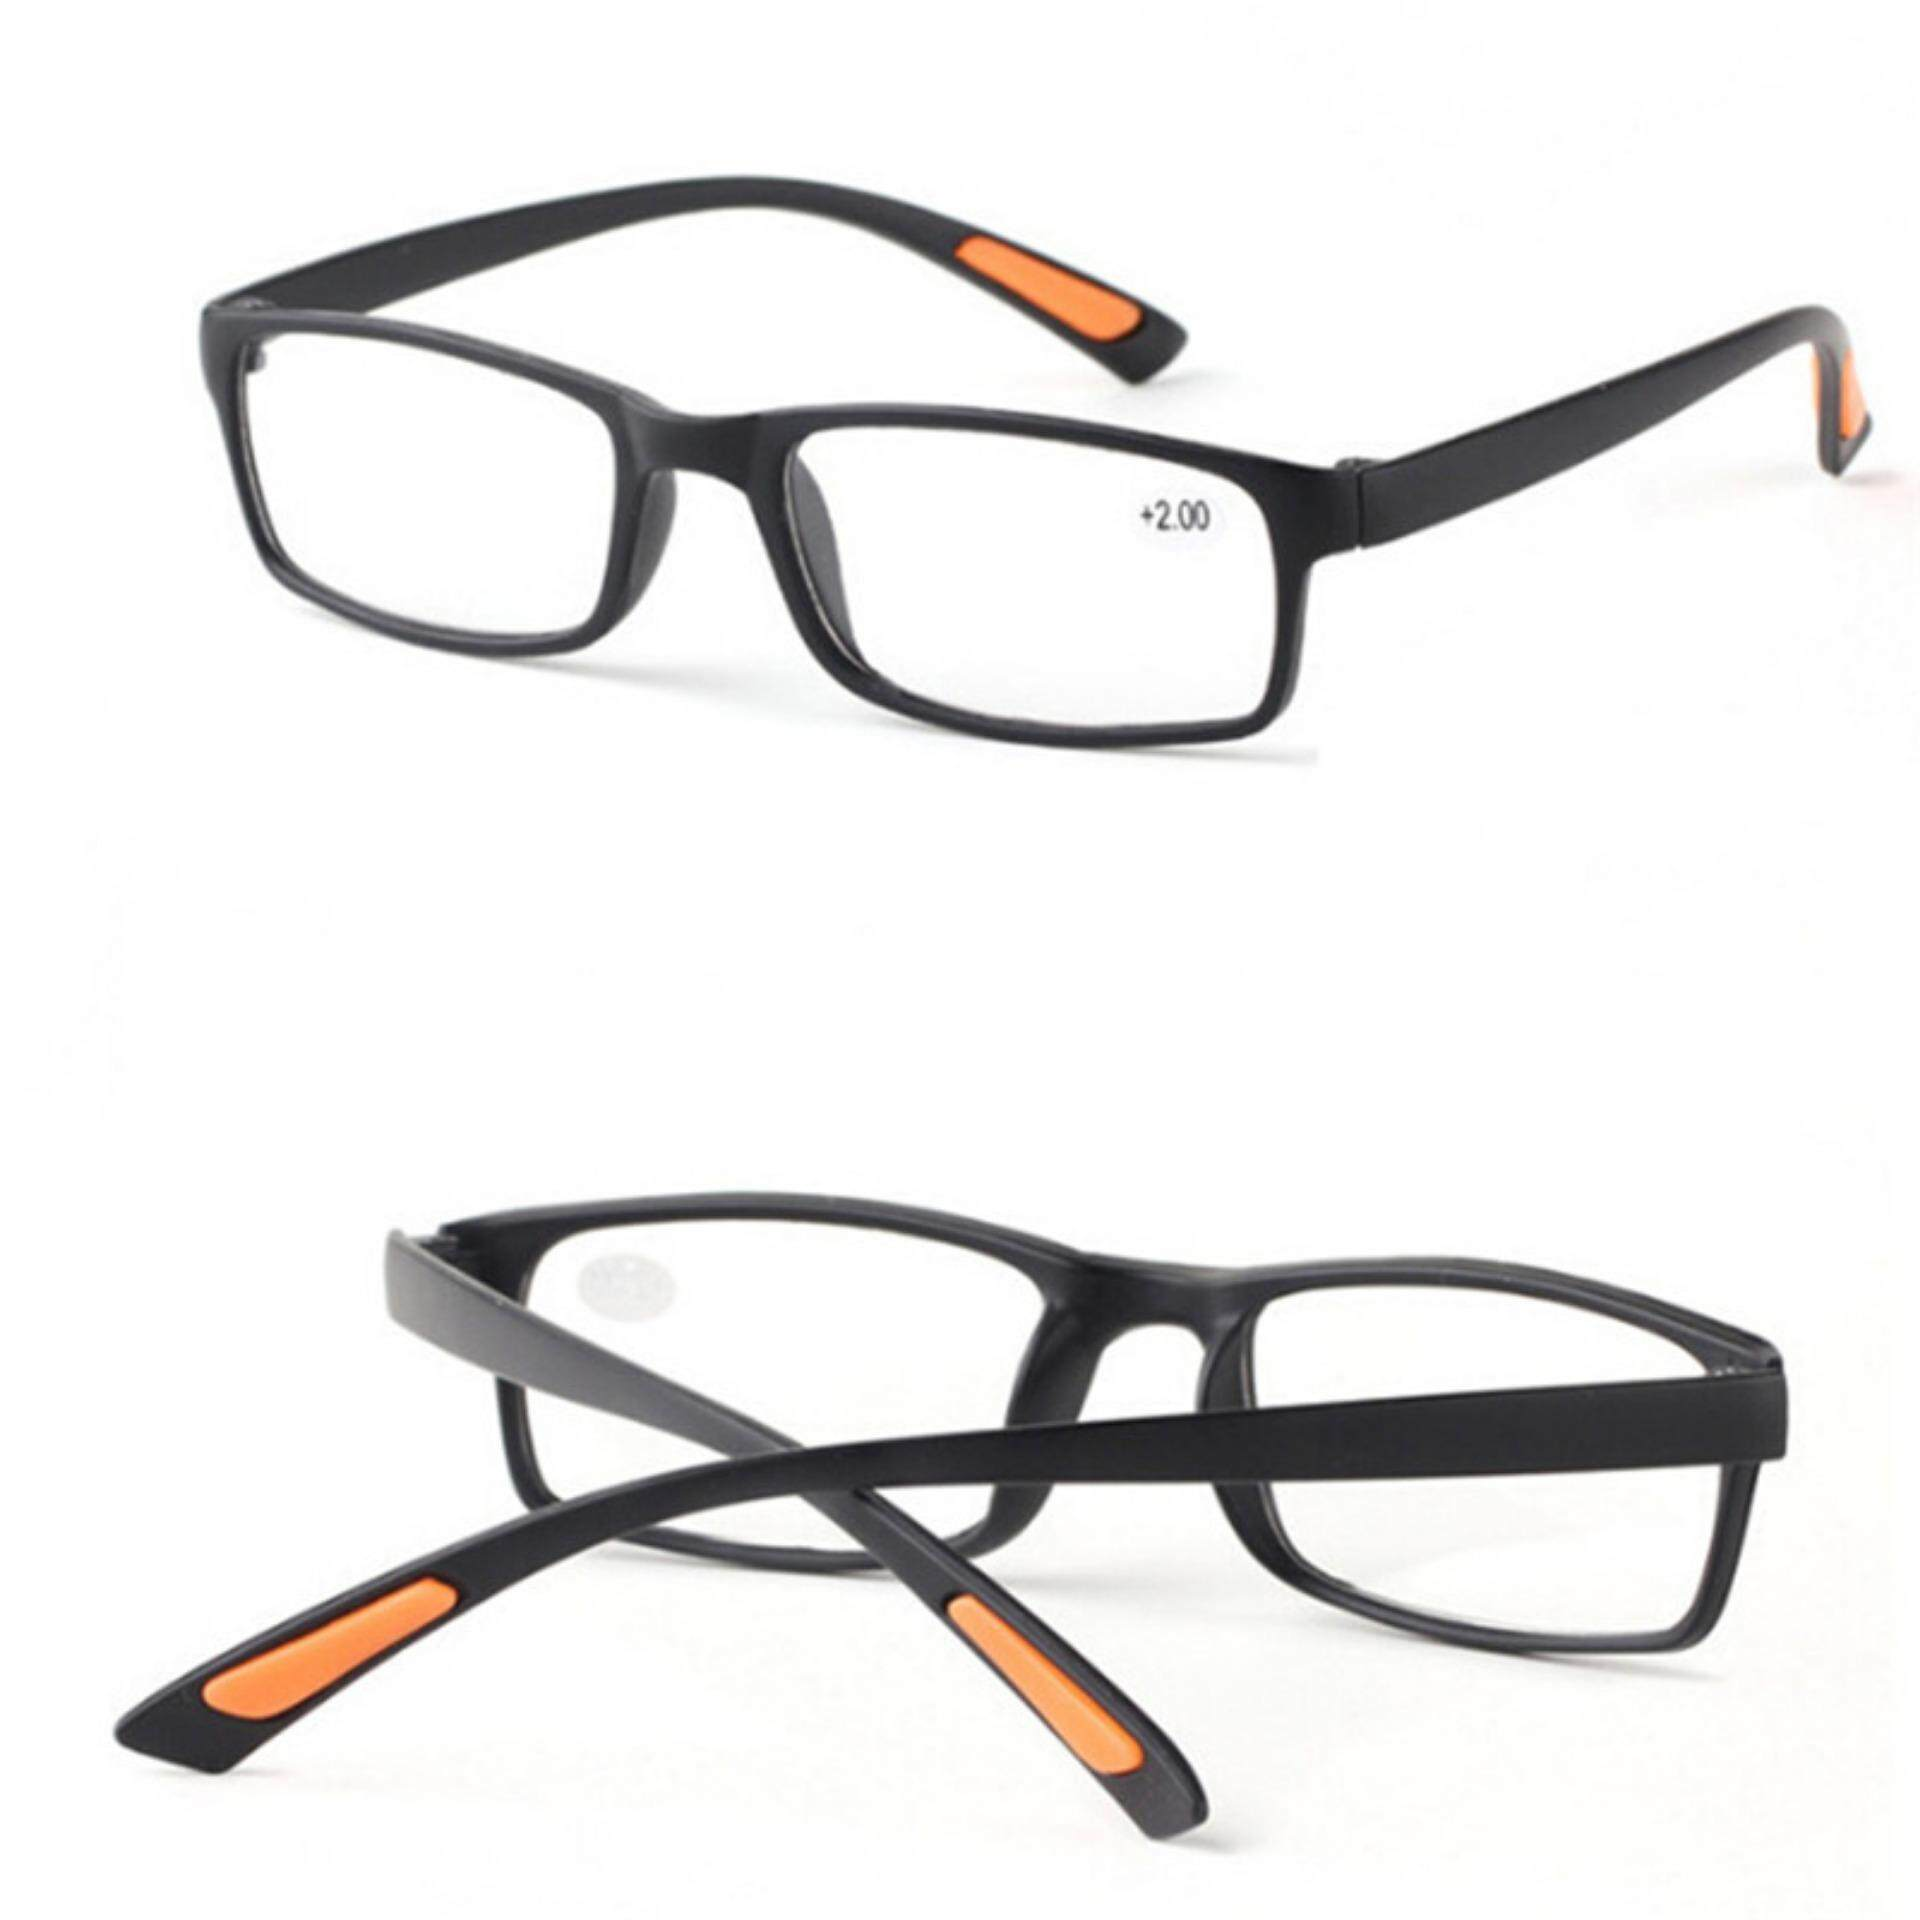 Retro Square Frame No Line Bifocal Progressive Clear Lens Reading Glasses Unisex Black 250:140mm By Beauty Wisdom.